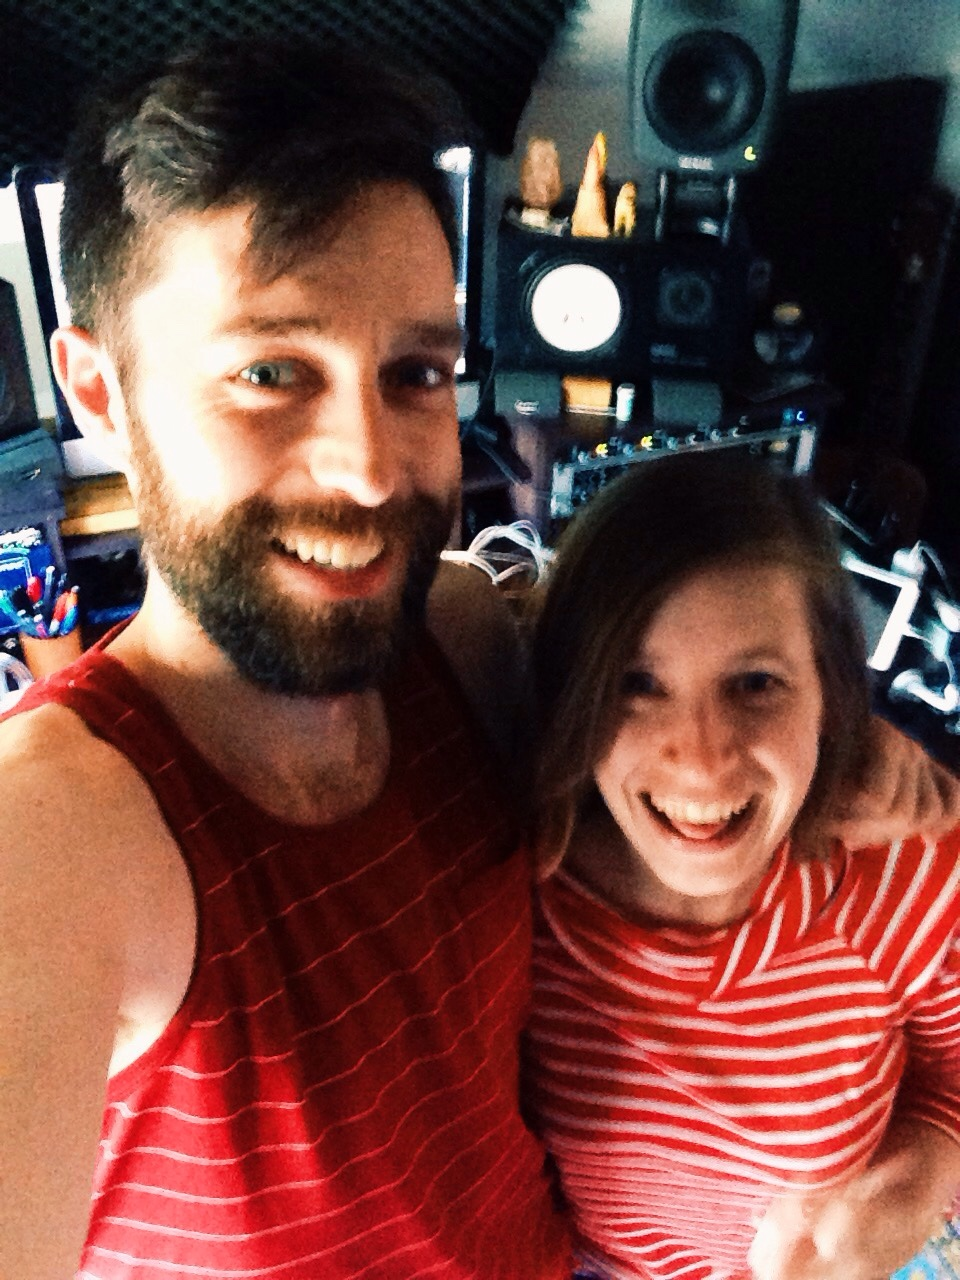 A good day is hanging out in the studio with my dear friend and long time collaborator James. Drank a lot of coffee and wrote a summer song. Our outfits matched too. #psychic     We are great at making music together, but terrible at selfies.   Xo